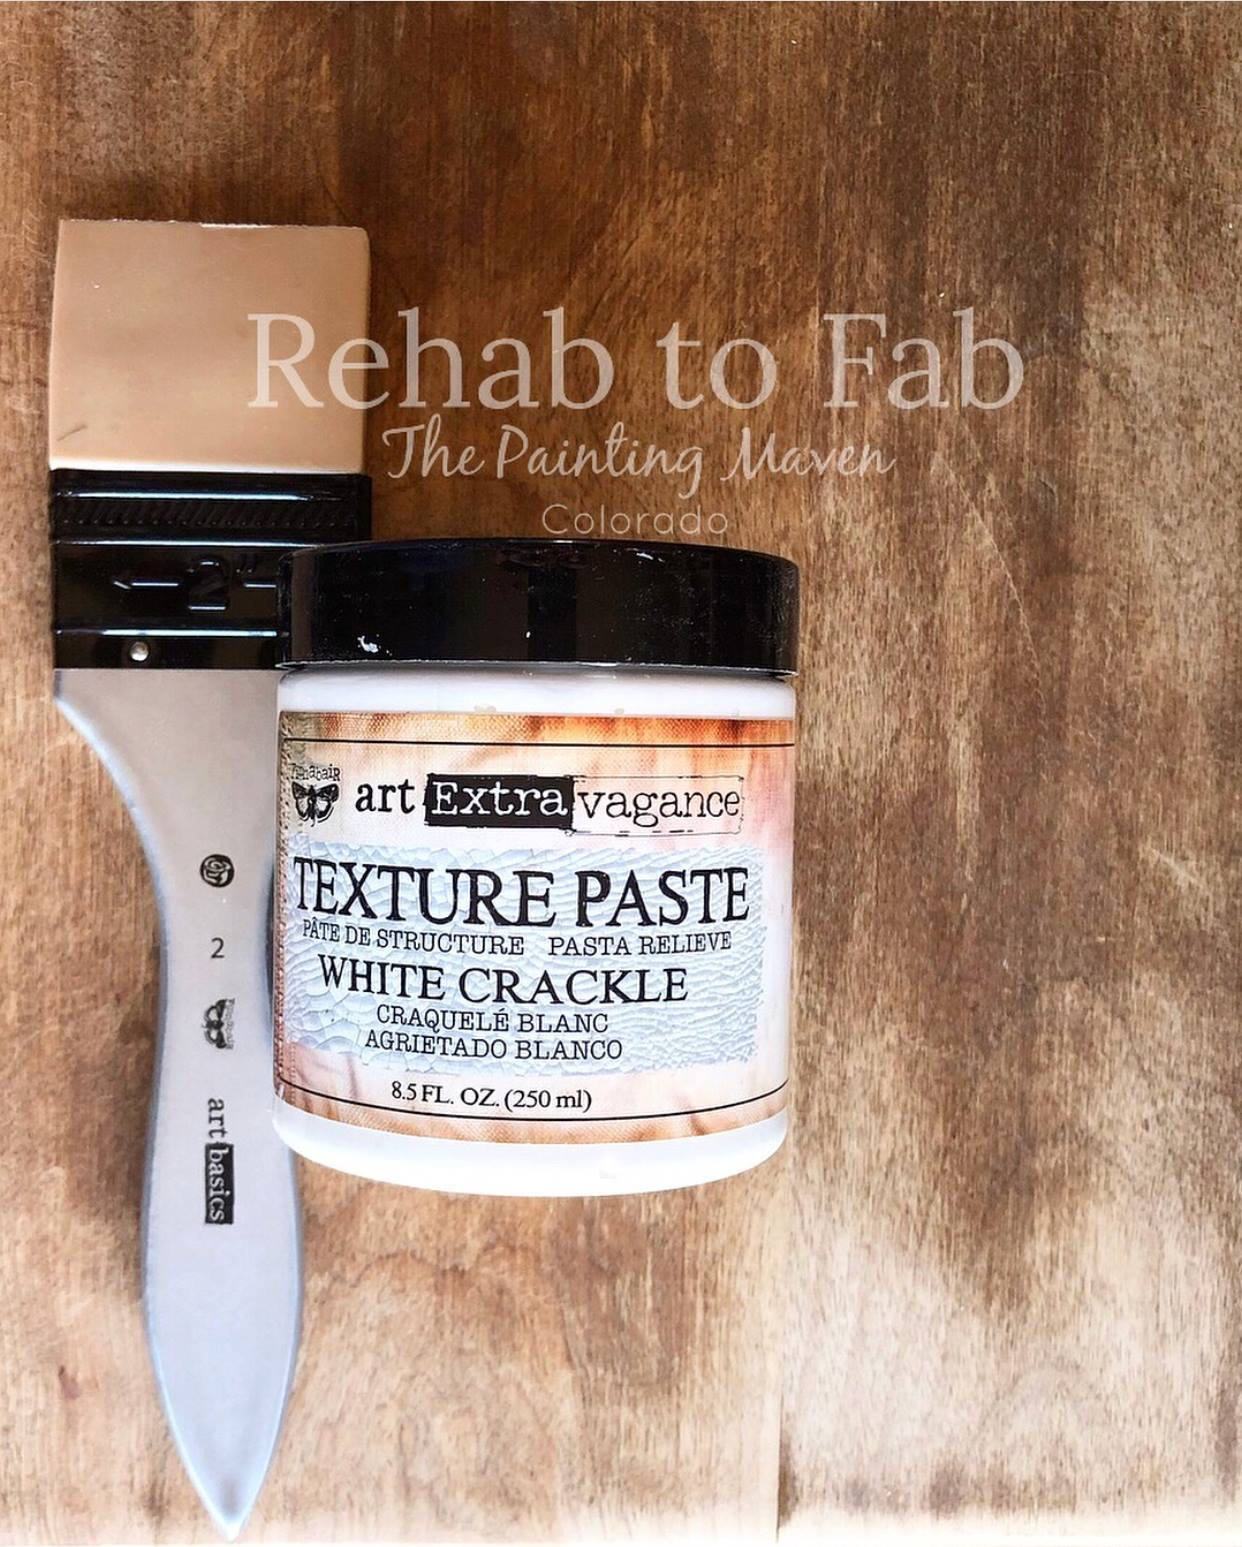 Stephanie always preps her surfaces for facelifts. She is a true believer in prepping, no matter what you are working on. Use a good cleaner and give your surfaces a good sanding to start. Once that was done, she added Finnabair's White Crackle Paste to the surface using a 2 inch silicone brush (also by Finnabair for Prima). The thicker the application, the bigger and better the cracks.